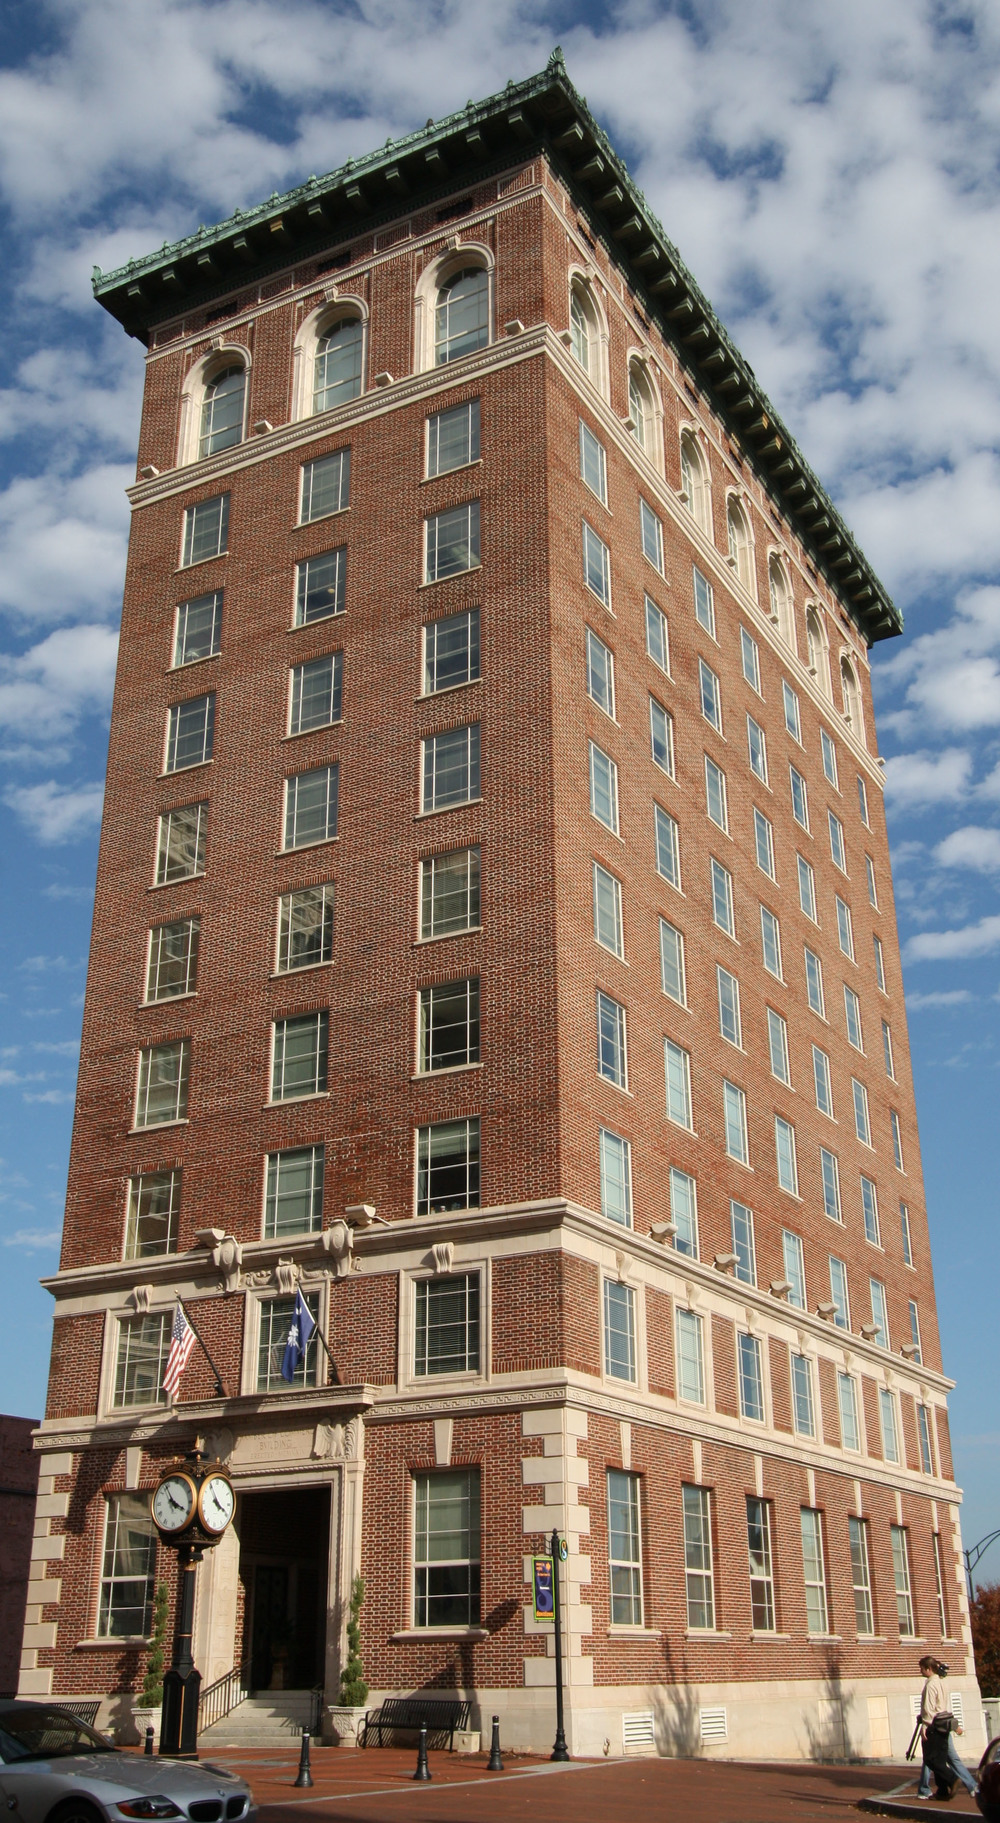 Old Chamber of Commerce - Greenville, SC - Built in 1930 - 10 Stories - Neo-Classical Style - Commercial Office Use